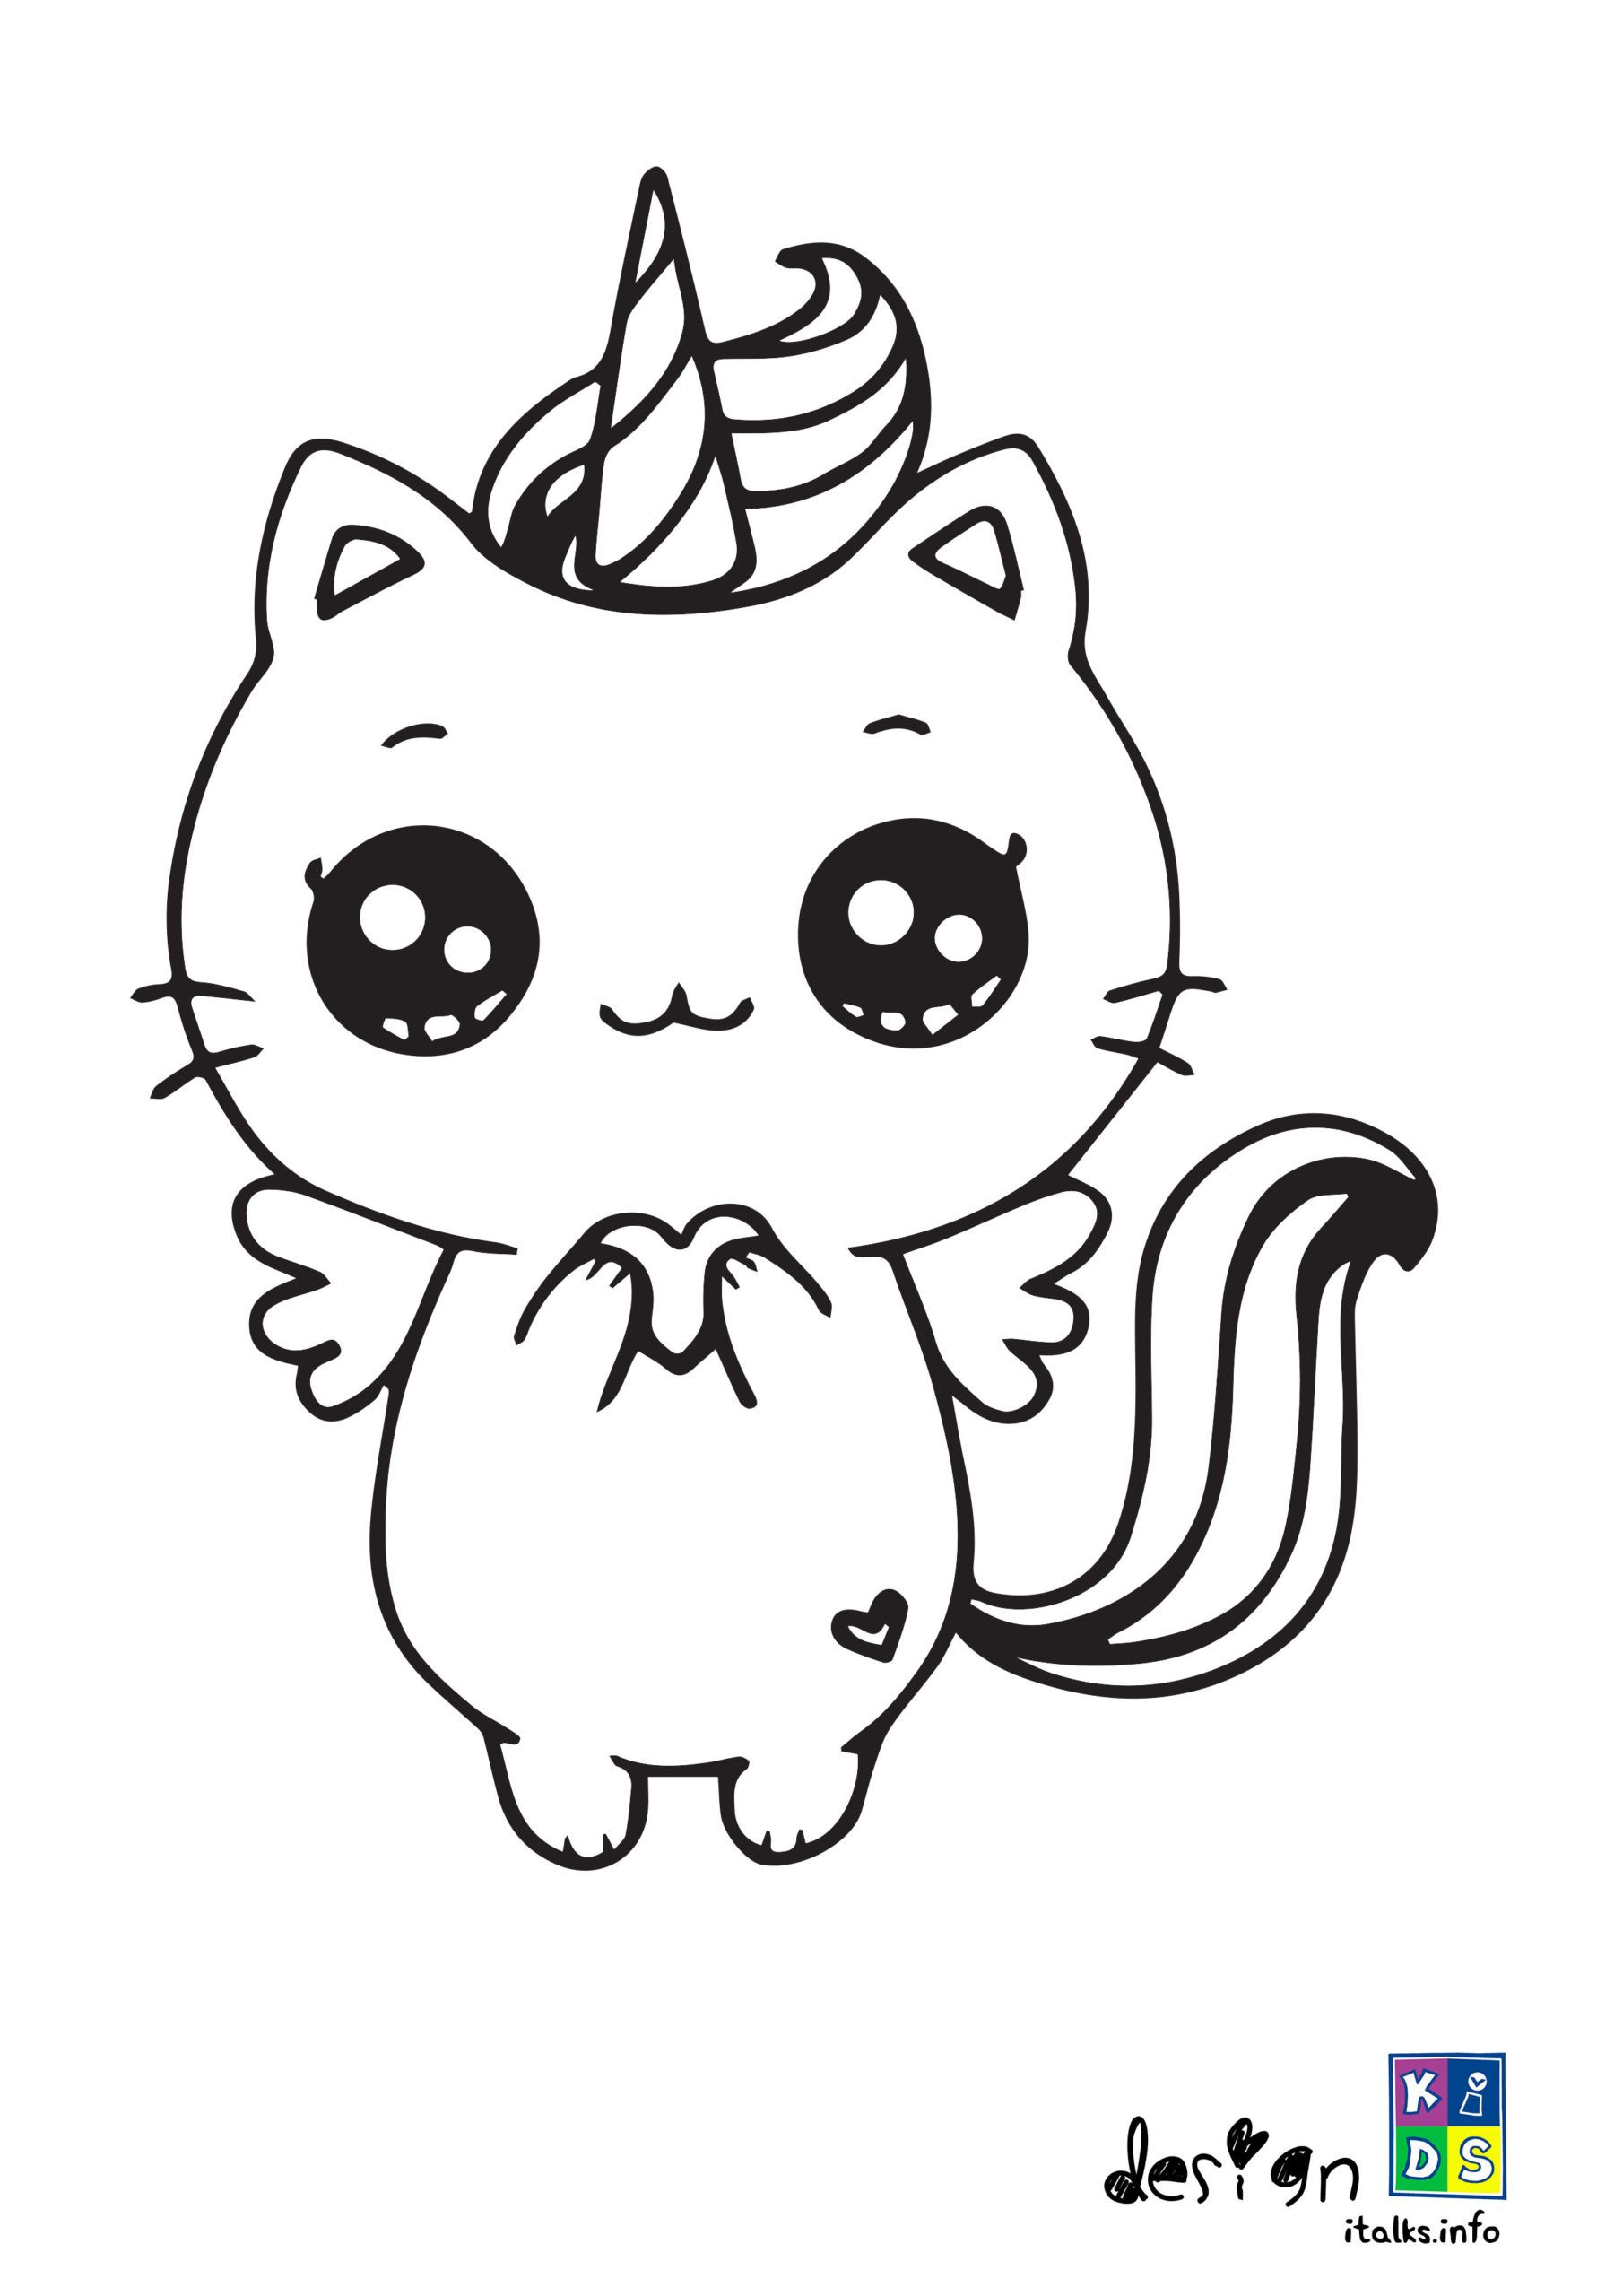 Printable Free Kawaii Unicorn In 2020 Kawaii Unicorn Unicorn Wallpaper Coloring Pages